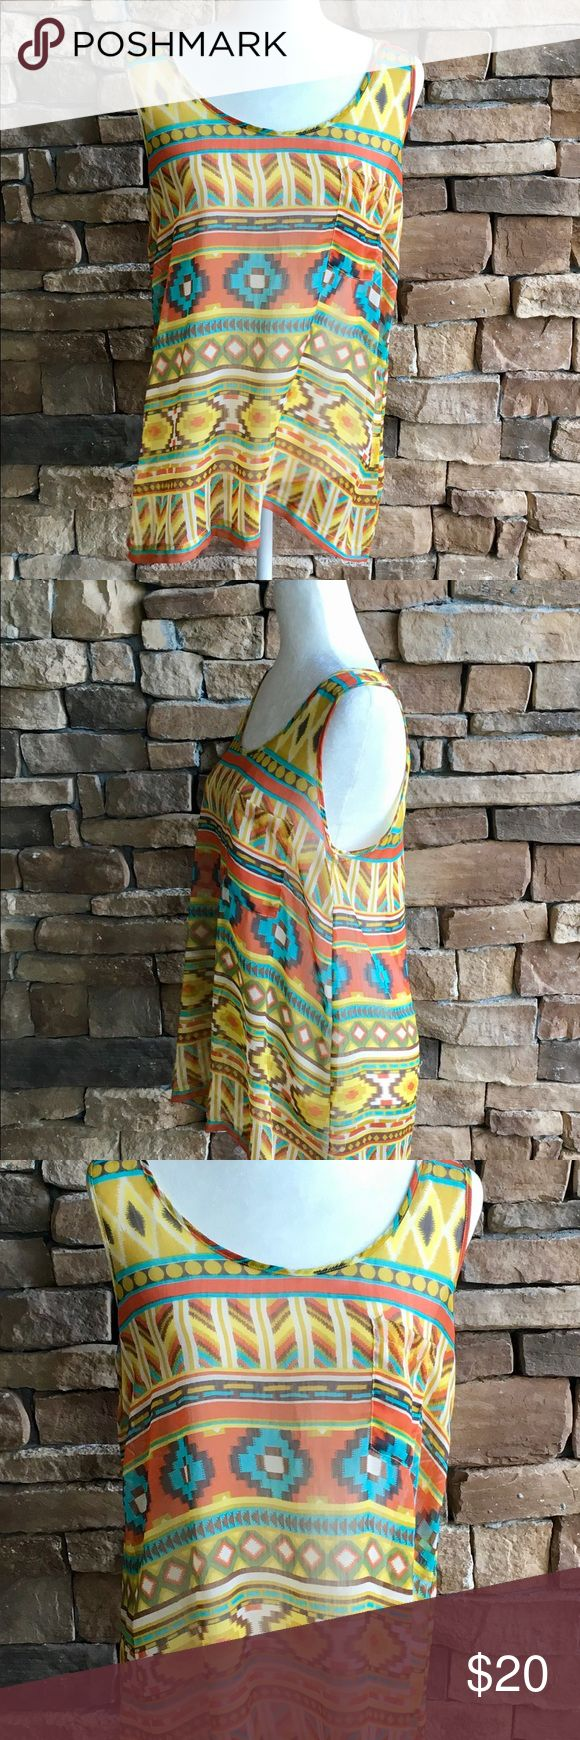 """Umgee Women's Boho Southwestern Top SZ M Colorful Umgee USA Colorful Southwestern Striped Sleeveless Top Exposed Zipper  Size Medium  Sheer Multicolored  Arm Pit to Arm Pit 18"""" laying flat  Total Length 27"""" One Chest Pocket  Clean and Smoke Free Home Gently used  Yellow Blue Brown Orange  Southwestern Pattern Umgee Tops"""